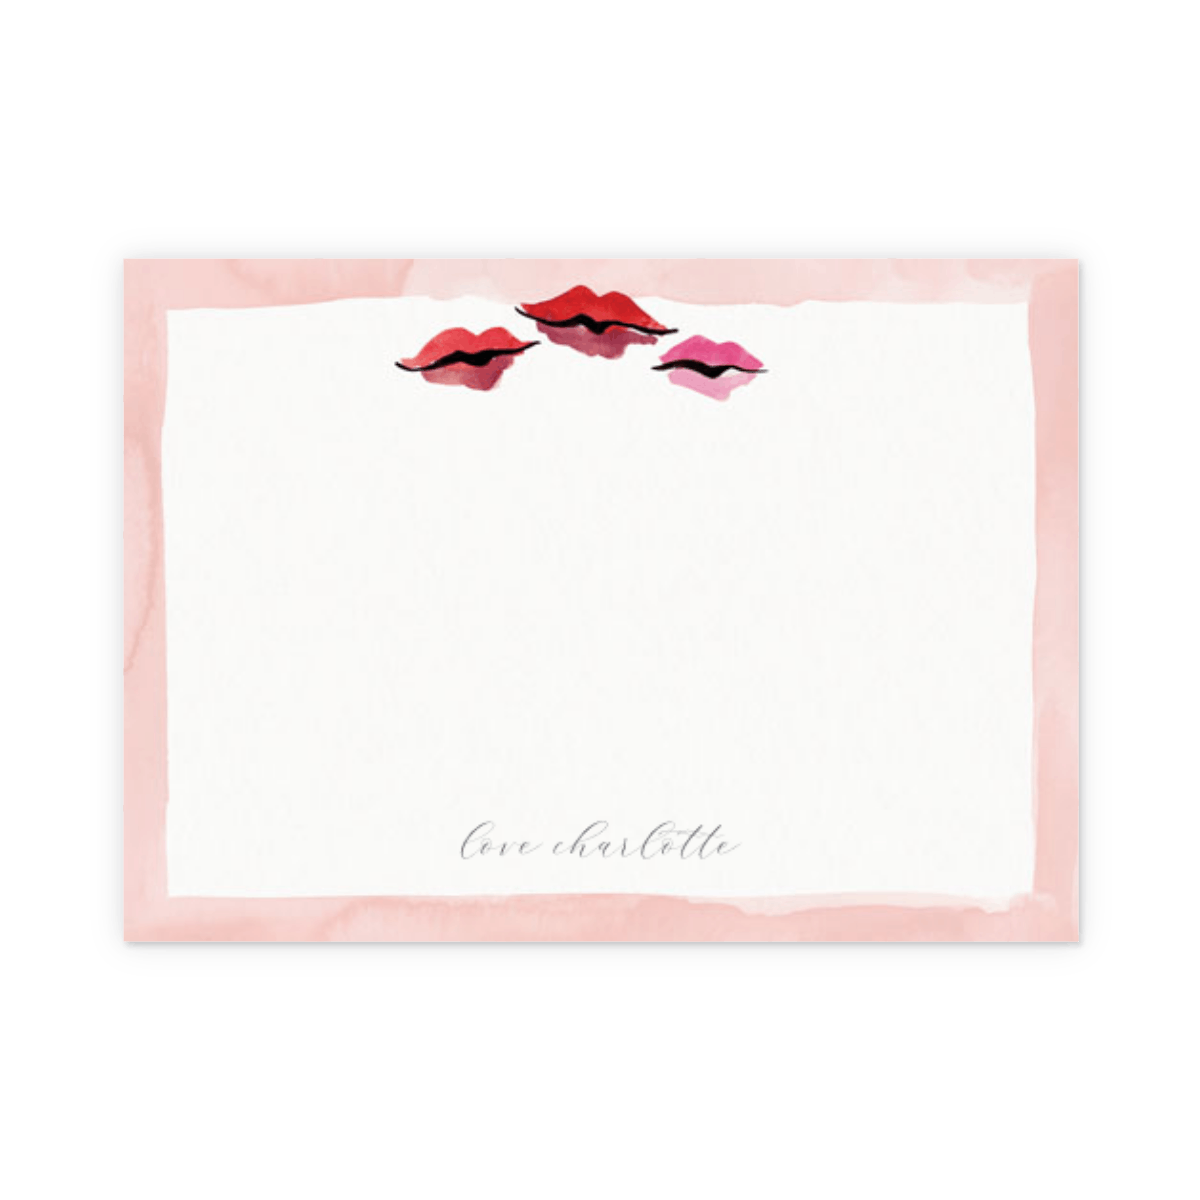 Https%3a%2f%2fwww.papier.com%2fproduct image%2f99386%2f10%2flips lips lips 25348 front 1577116067.png?ixlib=rb 1.1